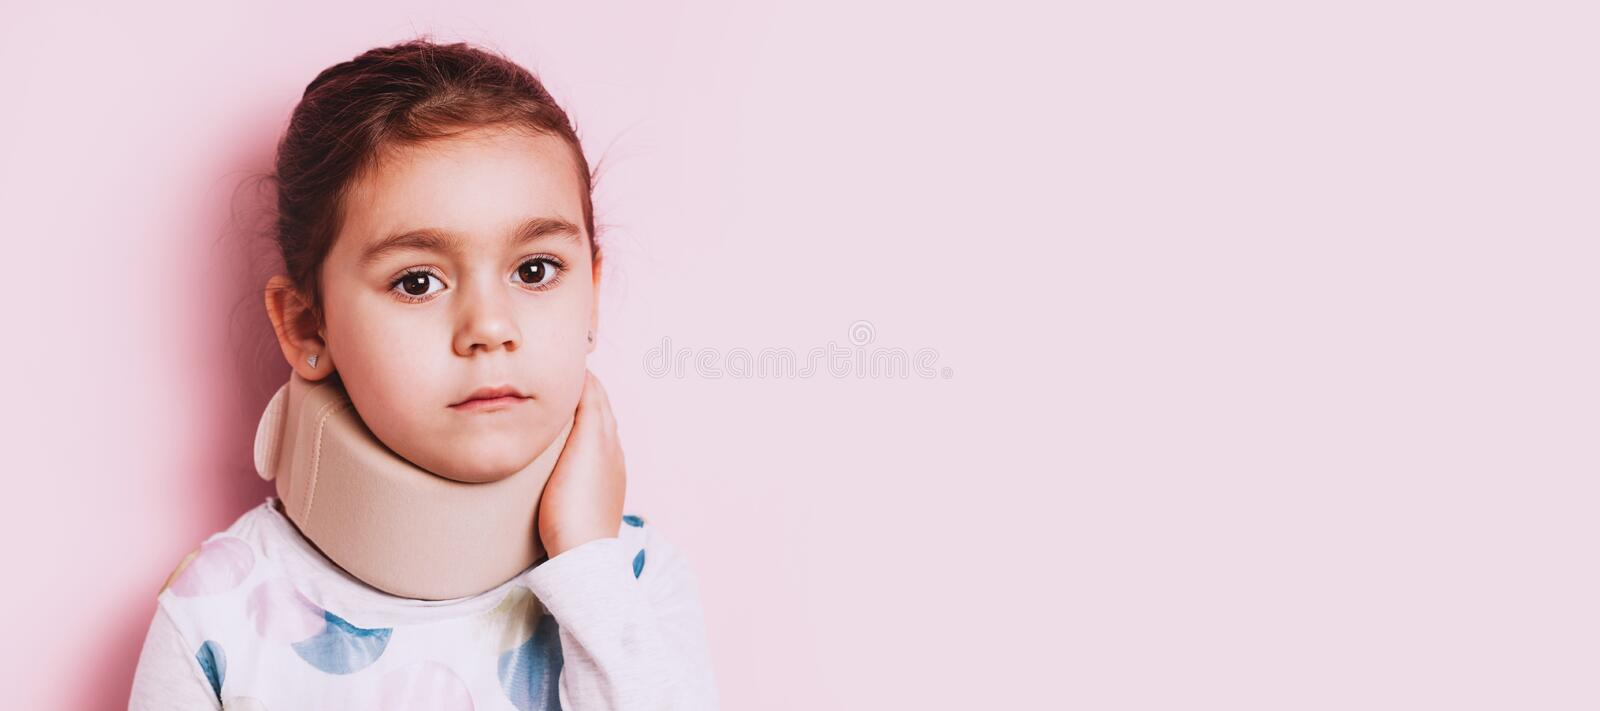 Portrait of Little girl wearing neck brace on pink background. Portrait of screaming Little girl wearing neck brace on pink background. childhood injuries royalty free stock photography